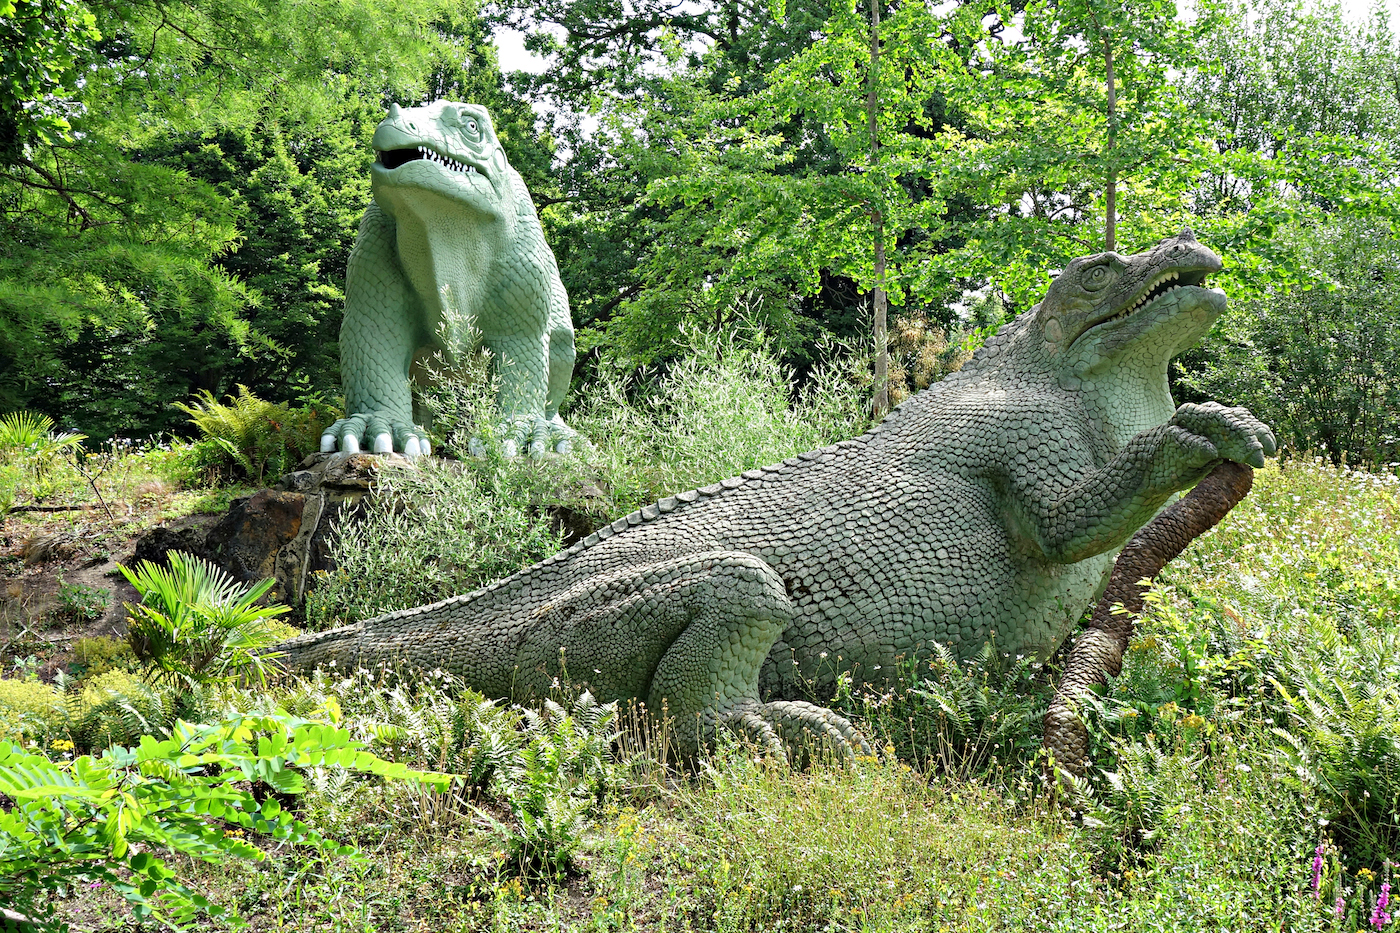 Dinosaur sculptures in Crystal Palace Park, London (photo by the author for Hyperallergic)